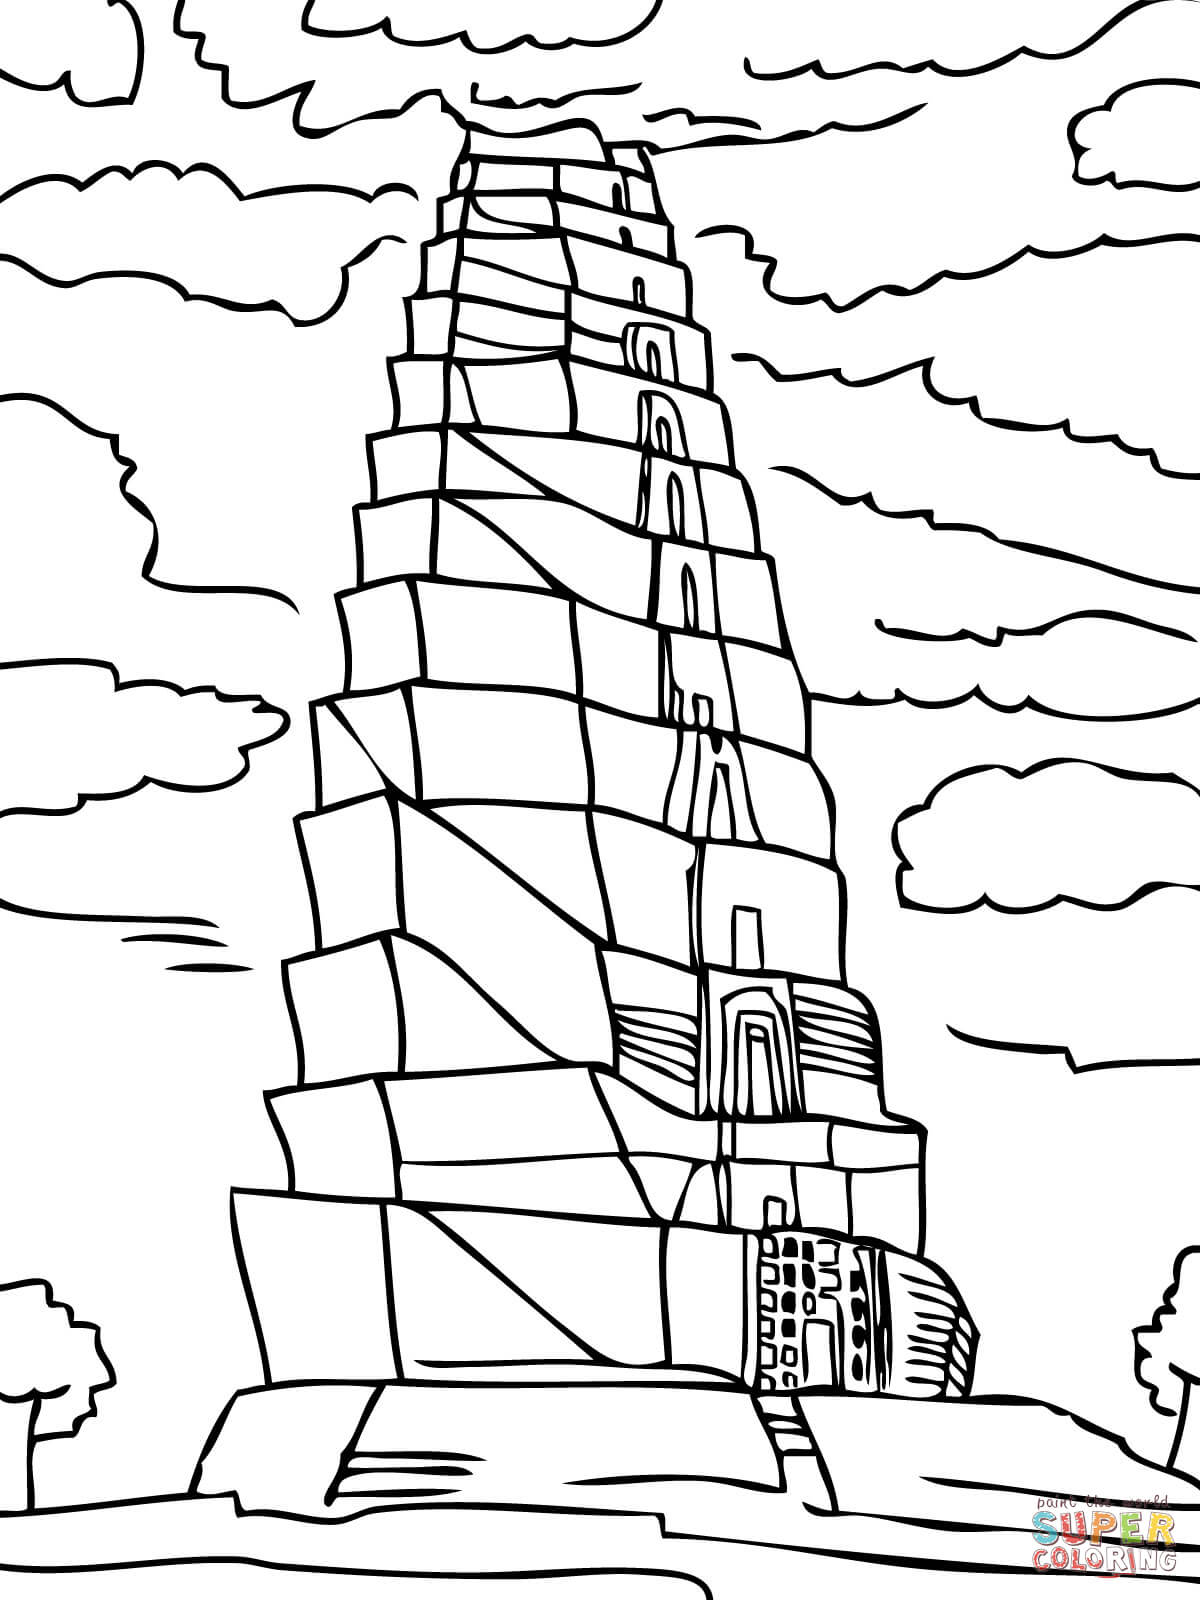 tower coloring pages tower of babel coloring pages coloring home tower coloring pages